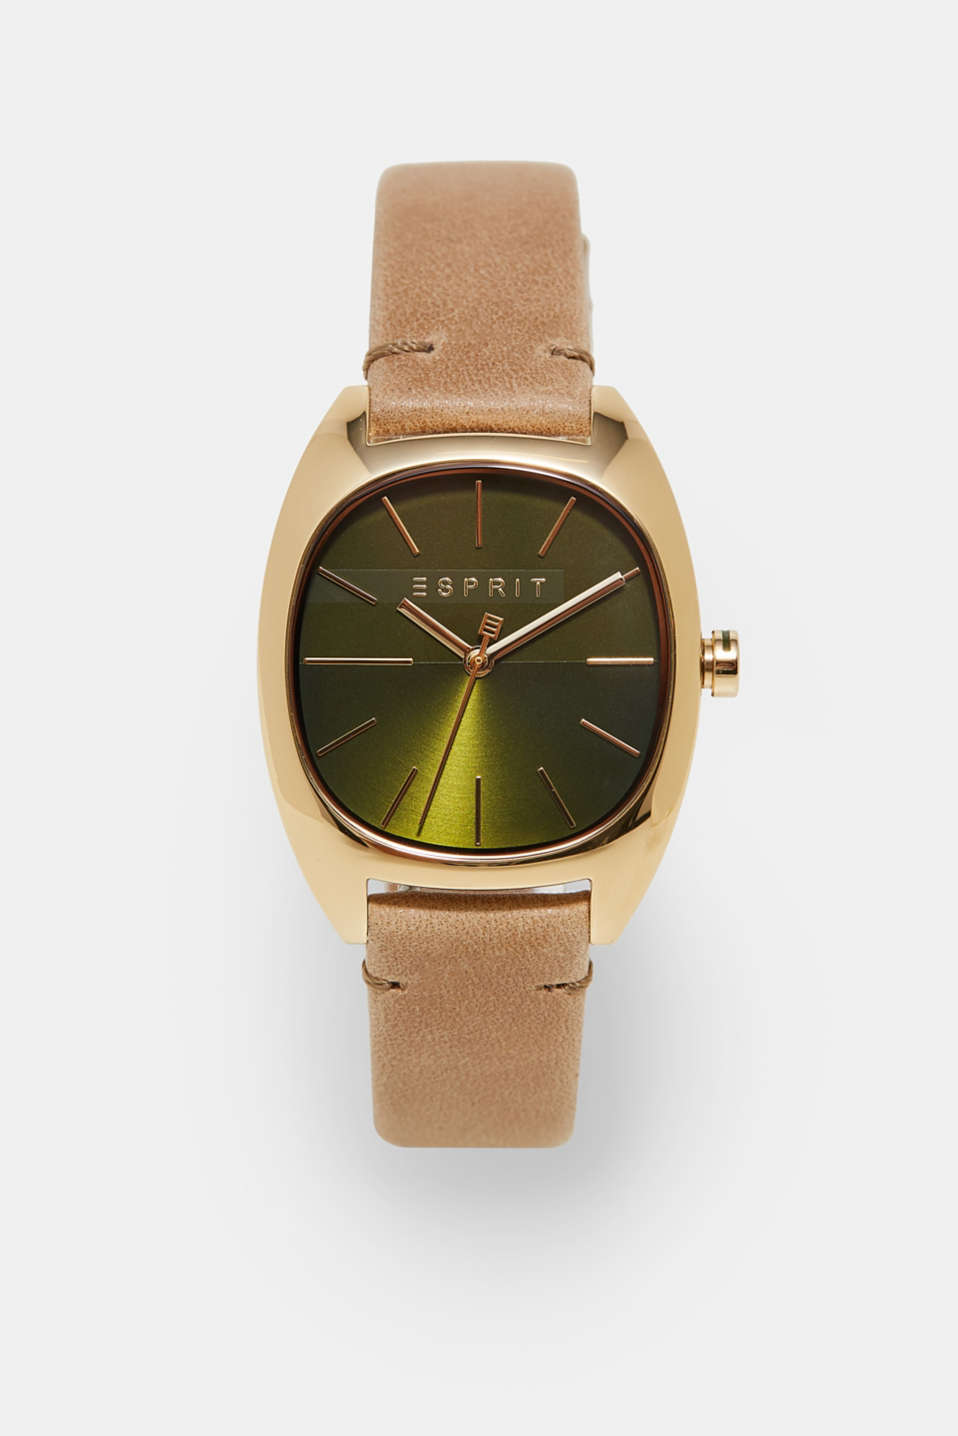 Esprit - Watch with a suede strap